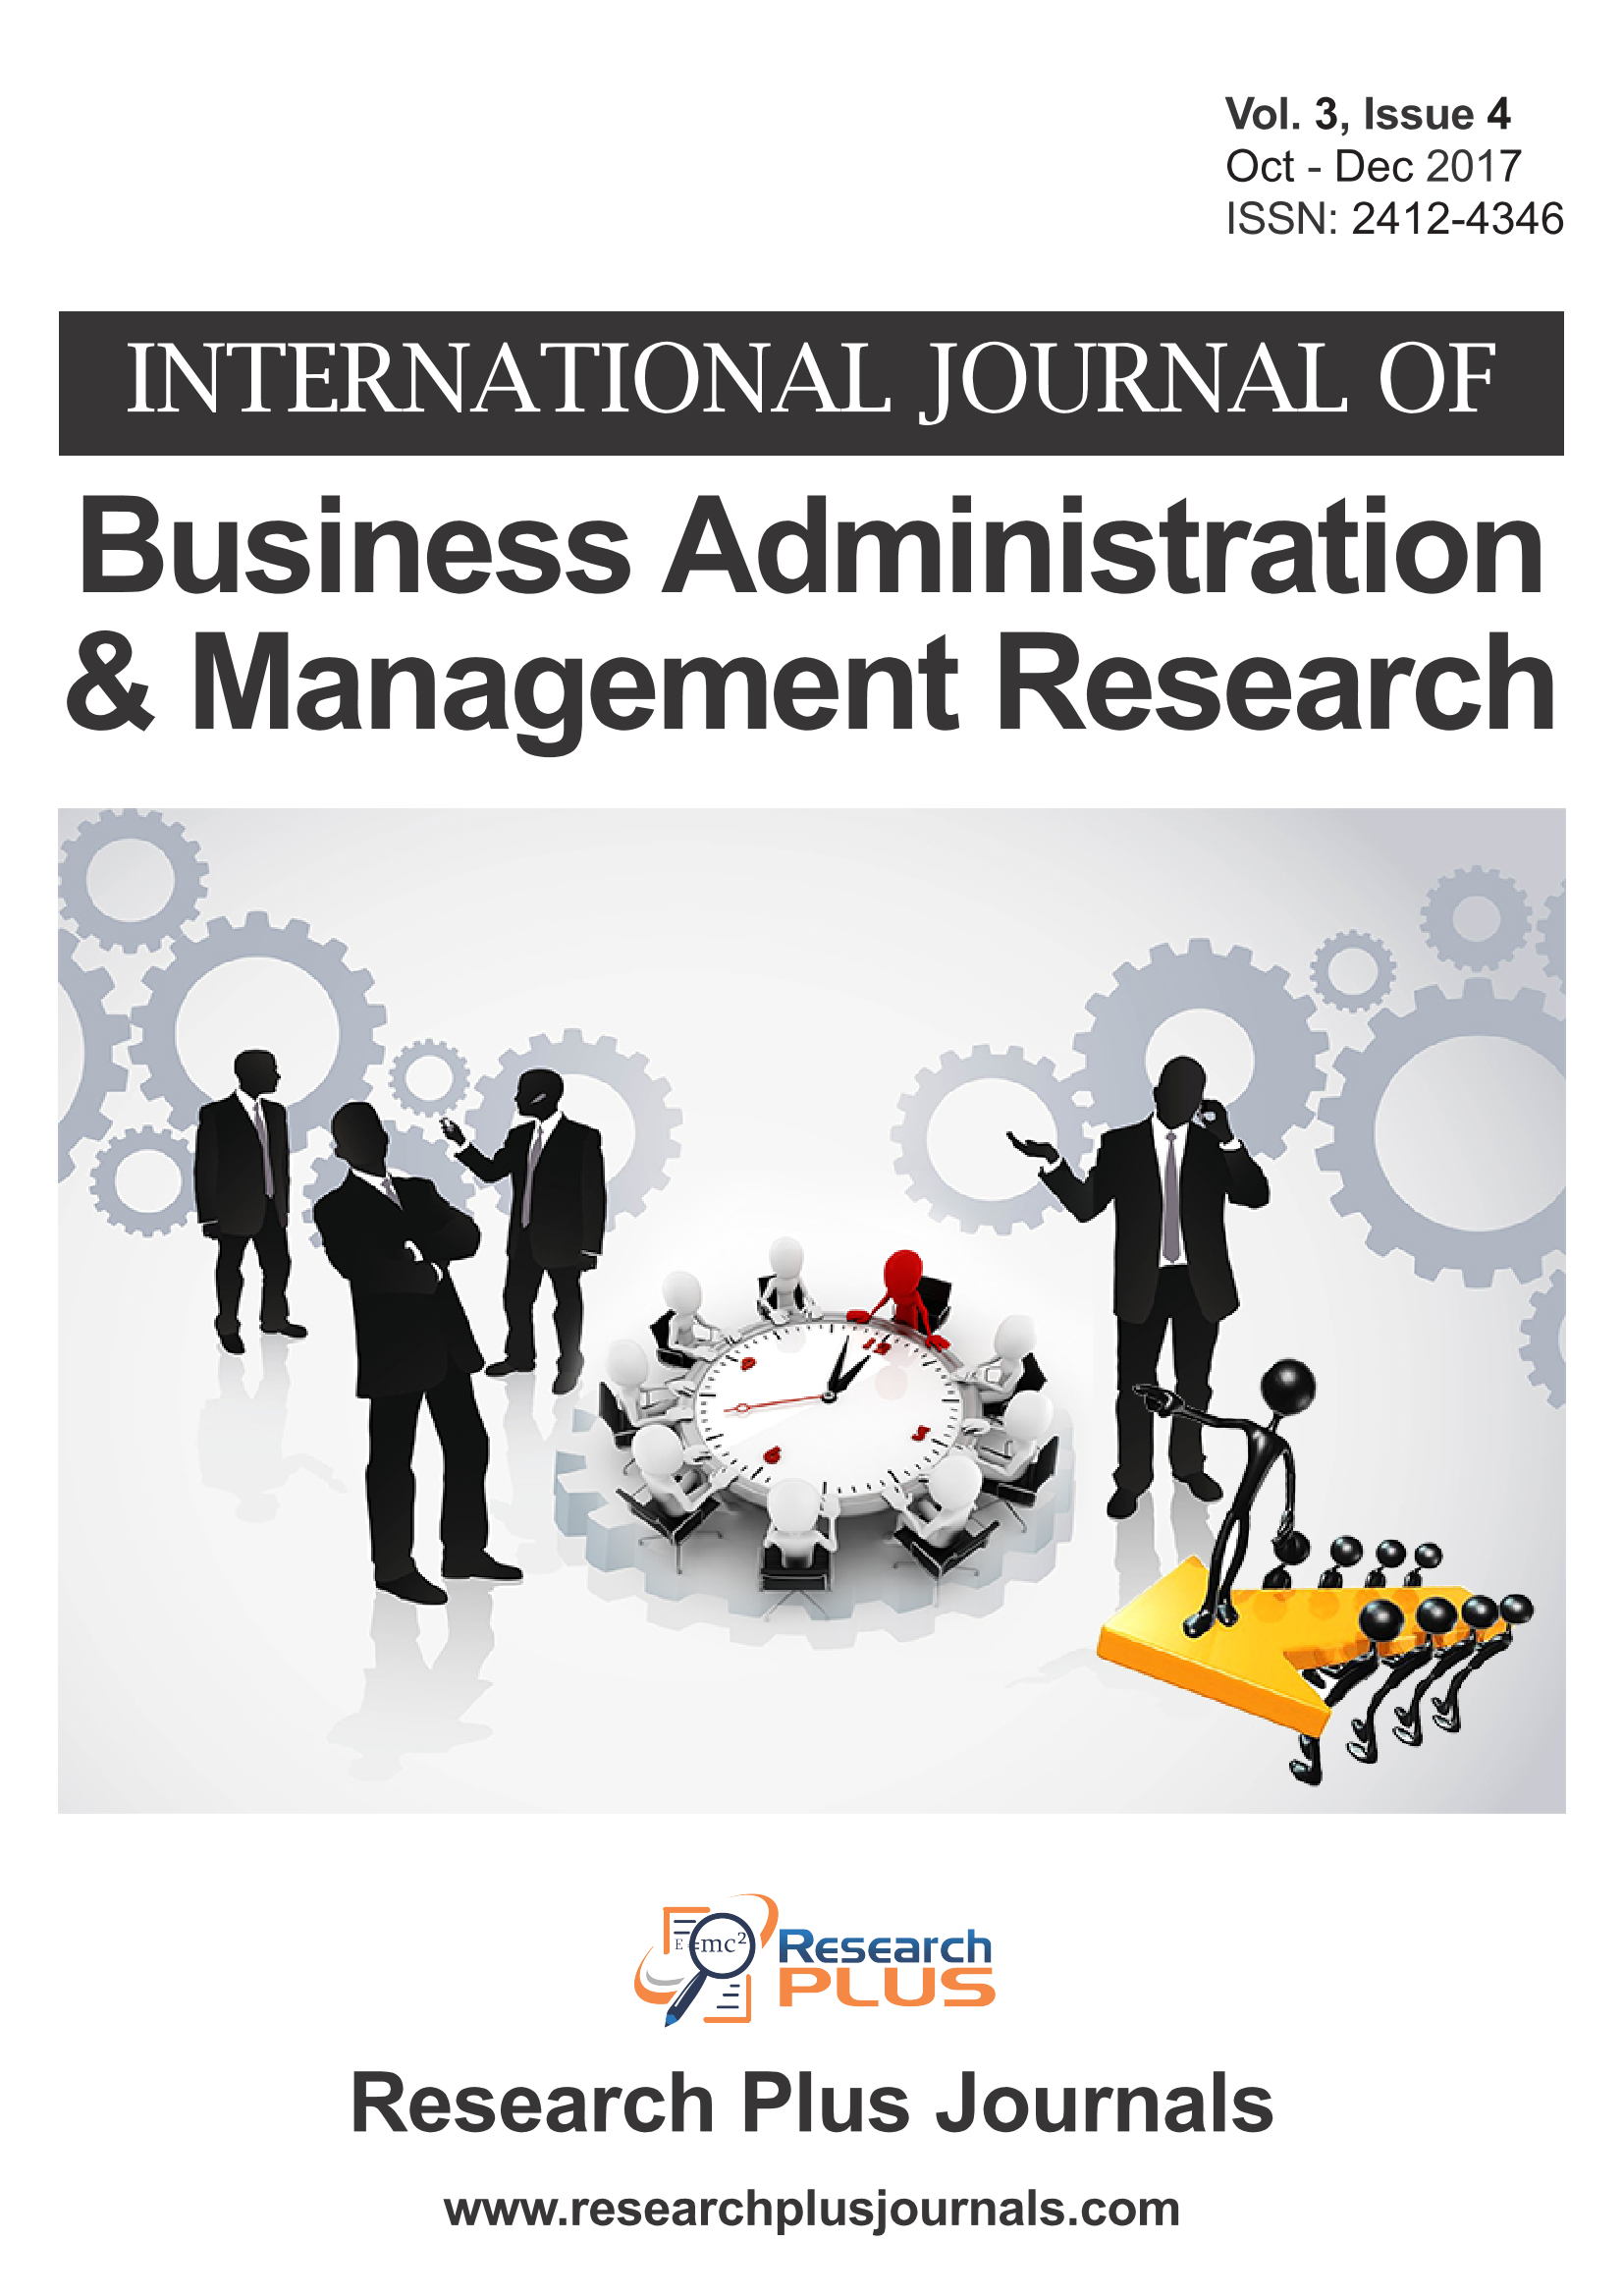 Volume 3, Issue 4, International Journal of Business Administration and Management Research (IJBAMR) (Online ISSN: 2412-4346)